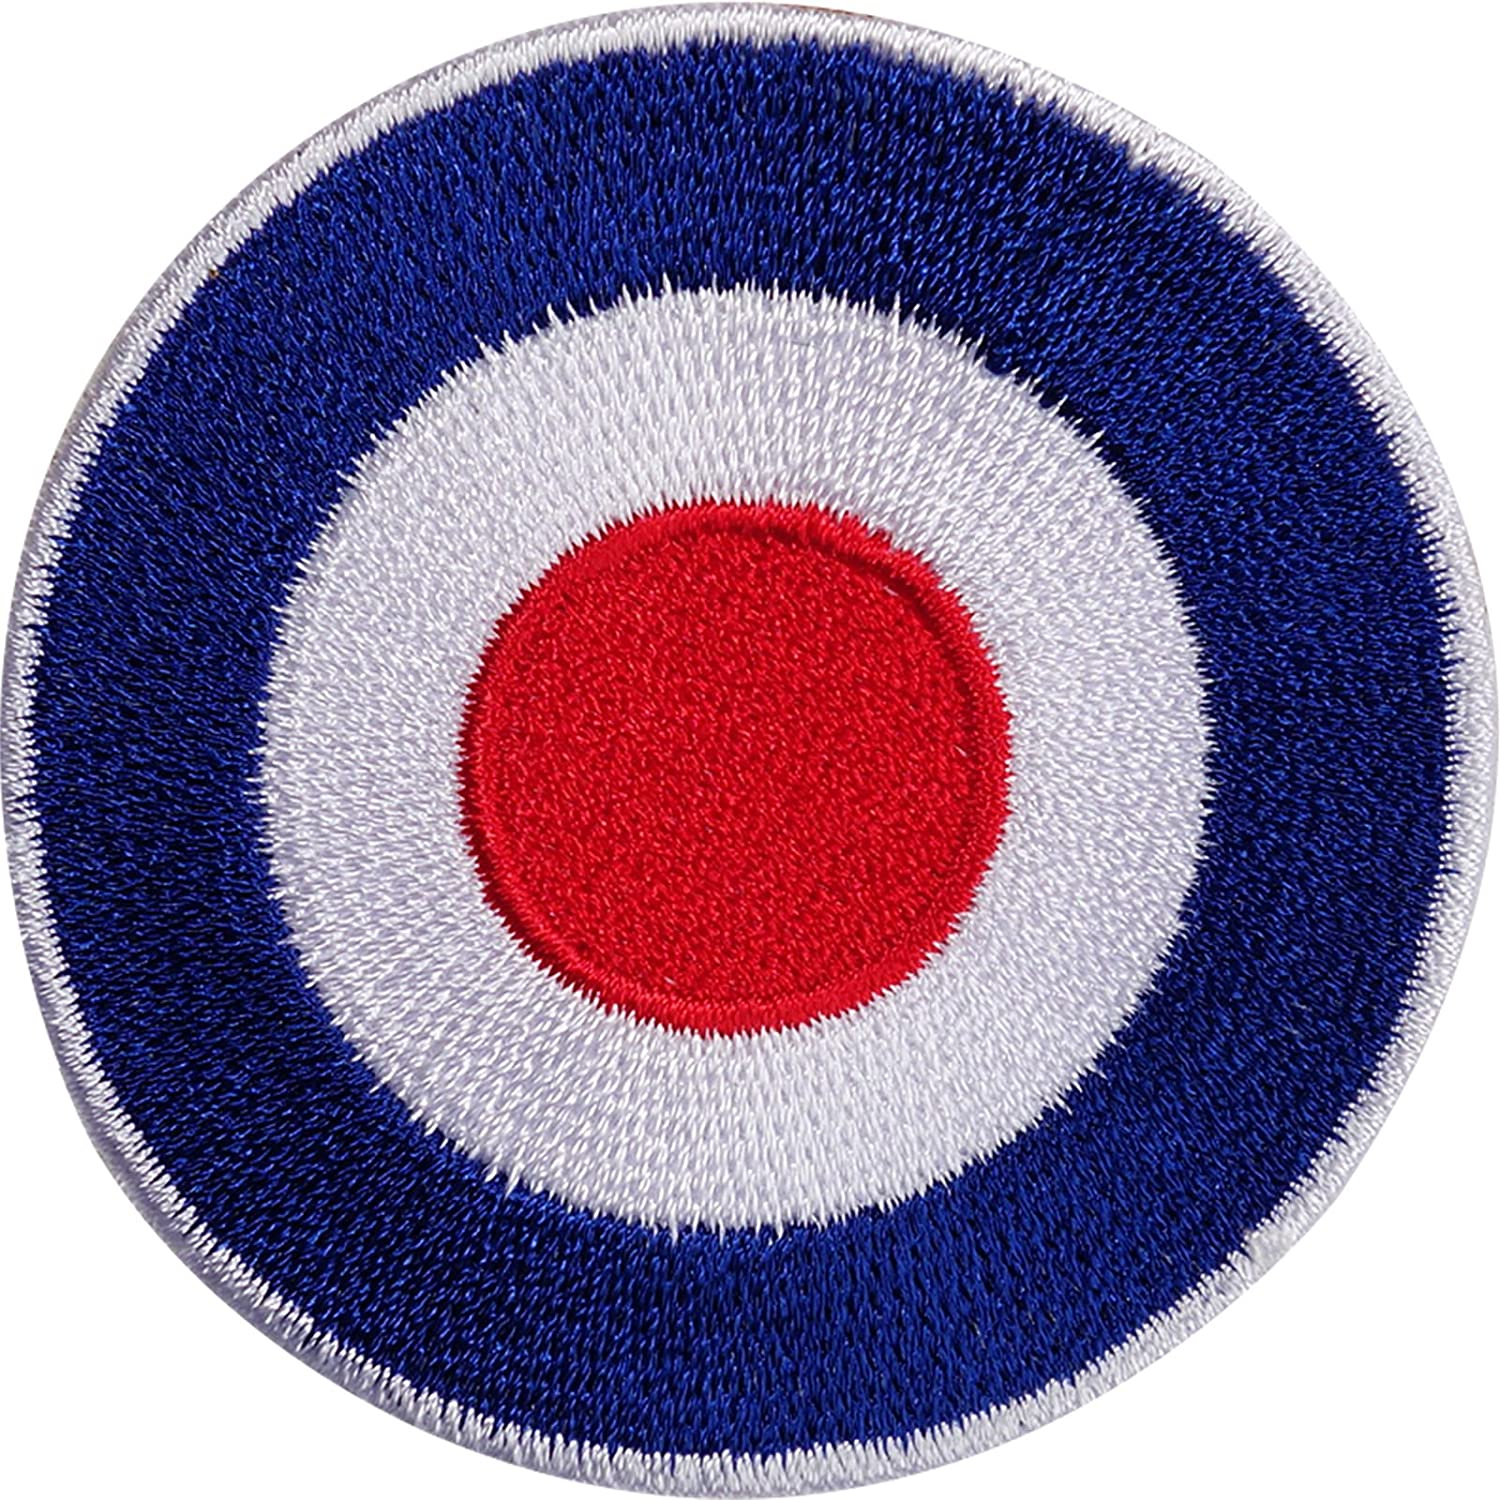 VESPA SCOOTER  /& AEROPLANE  Embroidered Iron Sew On Cloth Patch Badge APPLIQUE